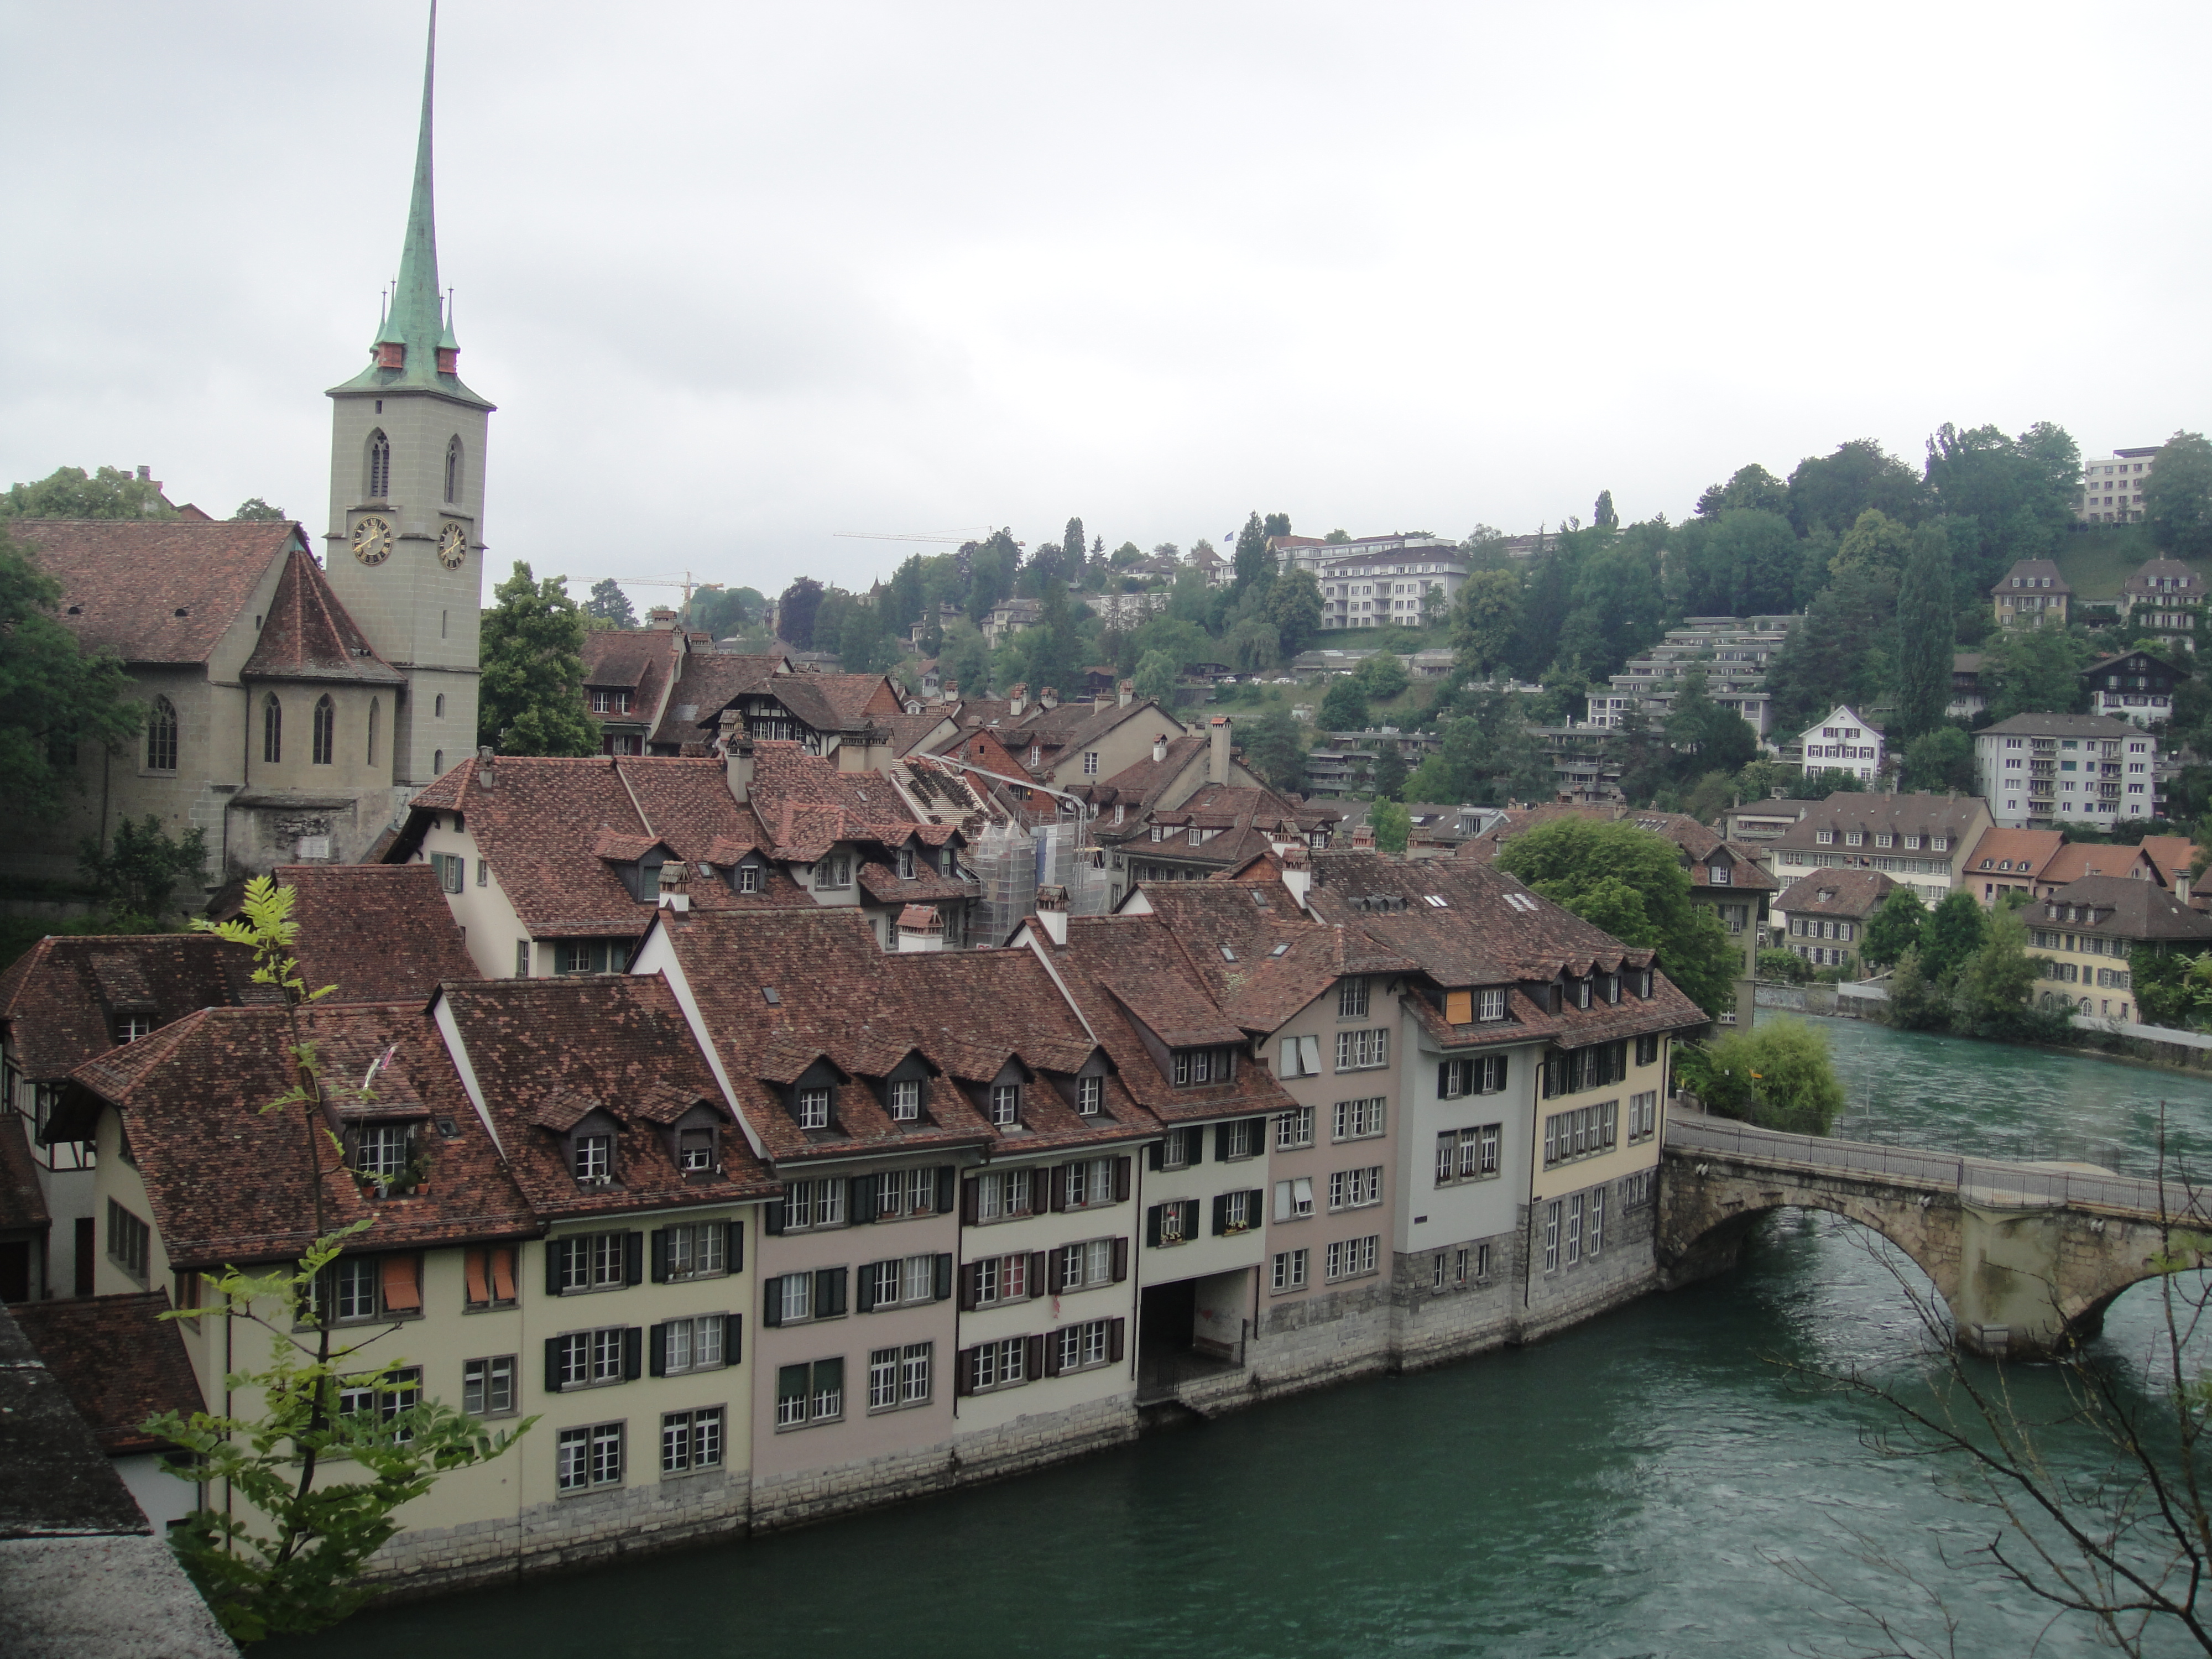 Bern Switzerland 6 Both Quintessential Swiss Has A Lovely River And Traditional Architecture Stop If You Get Anywhere Near To See The Streets